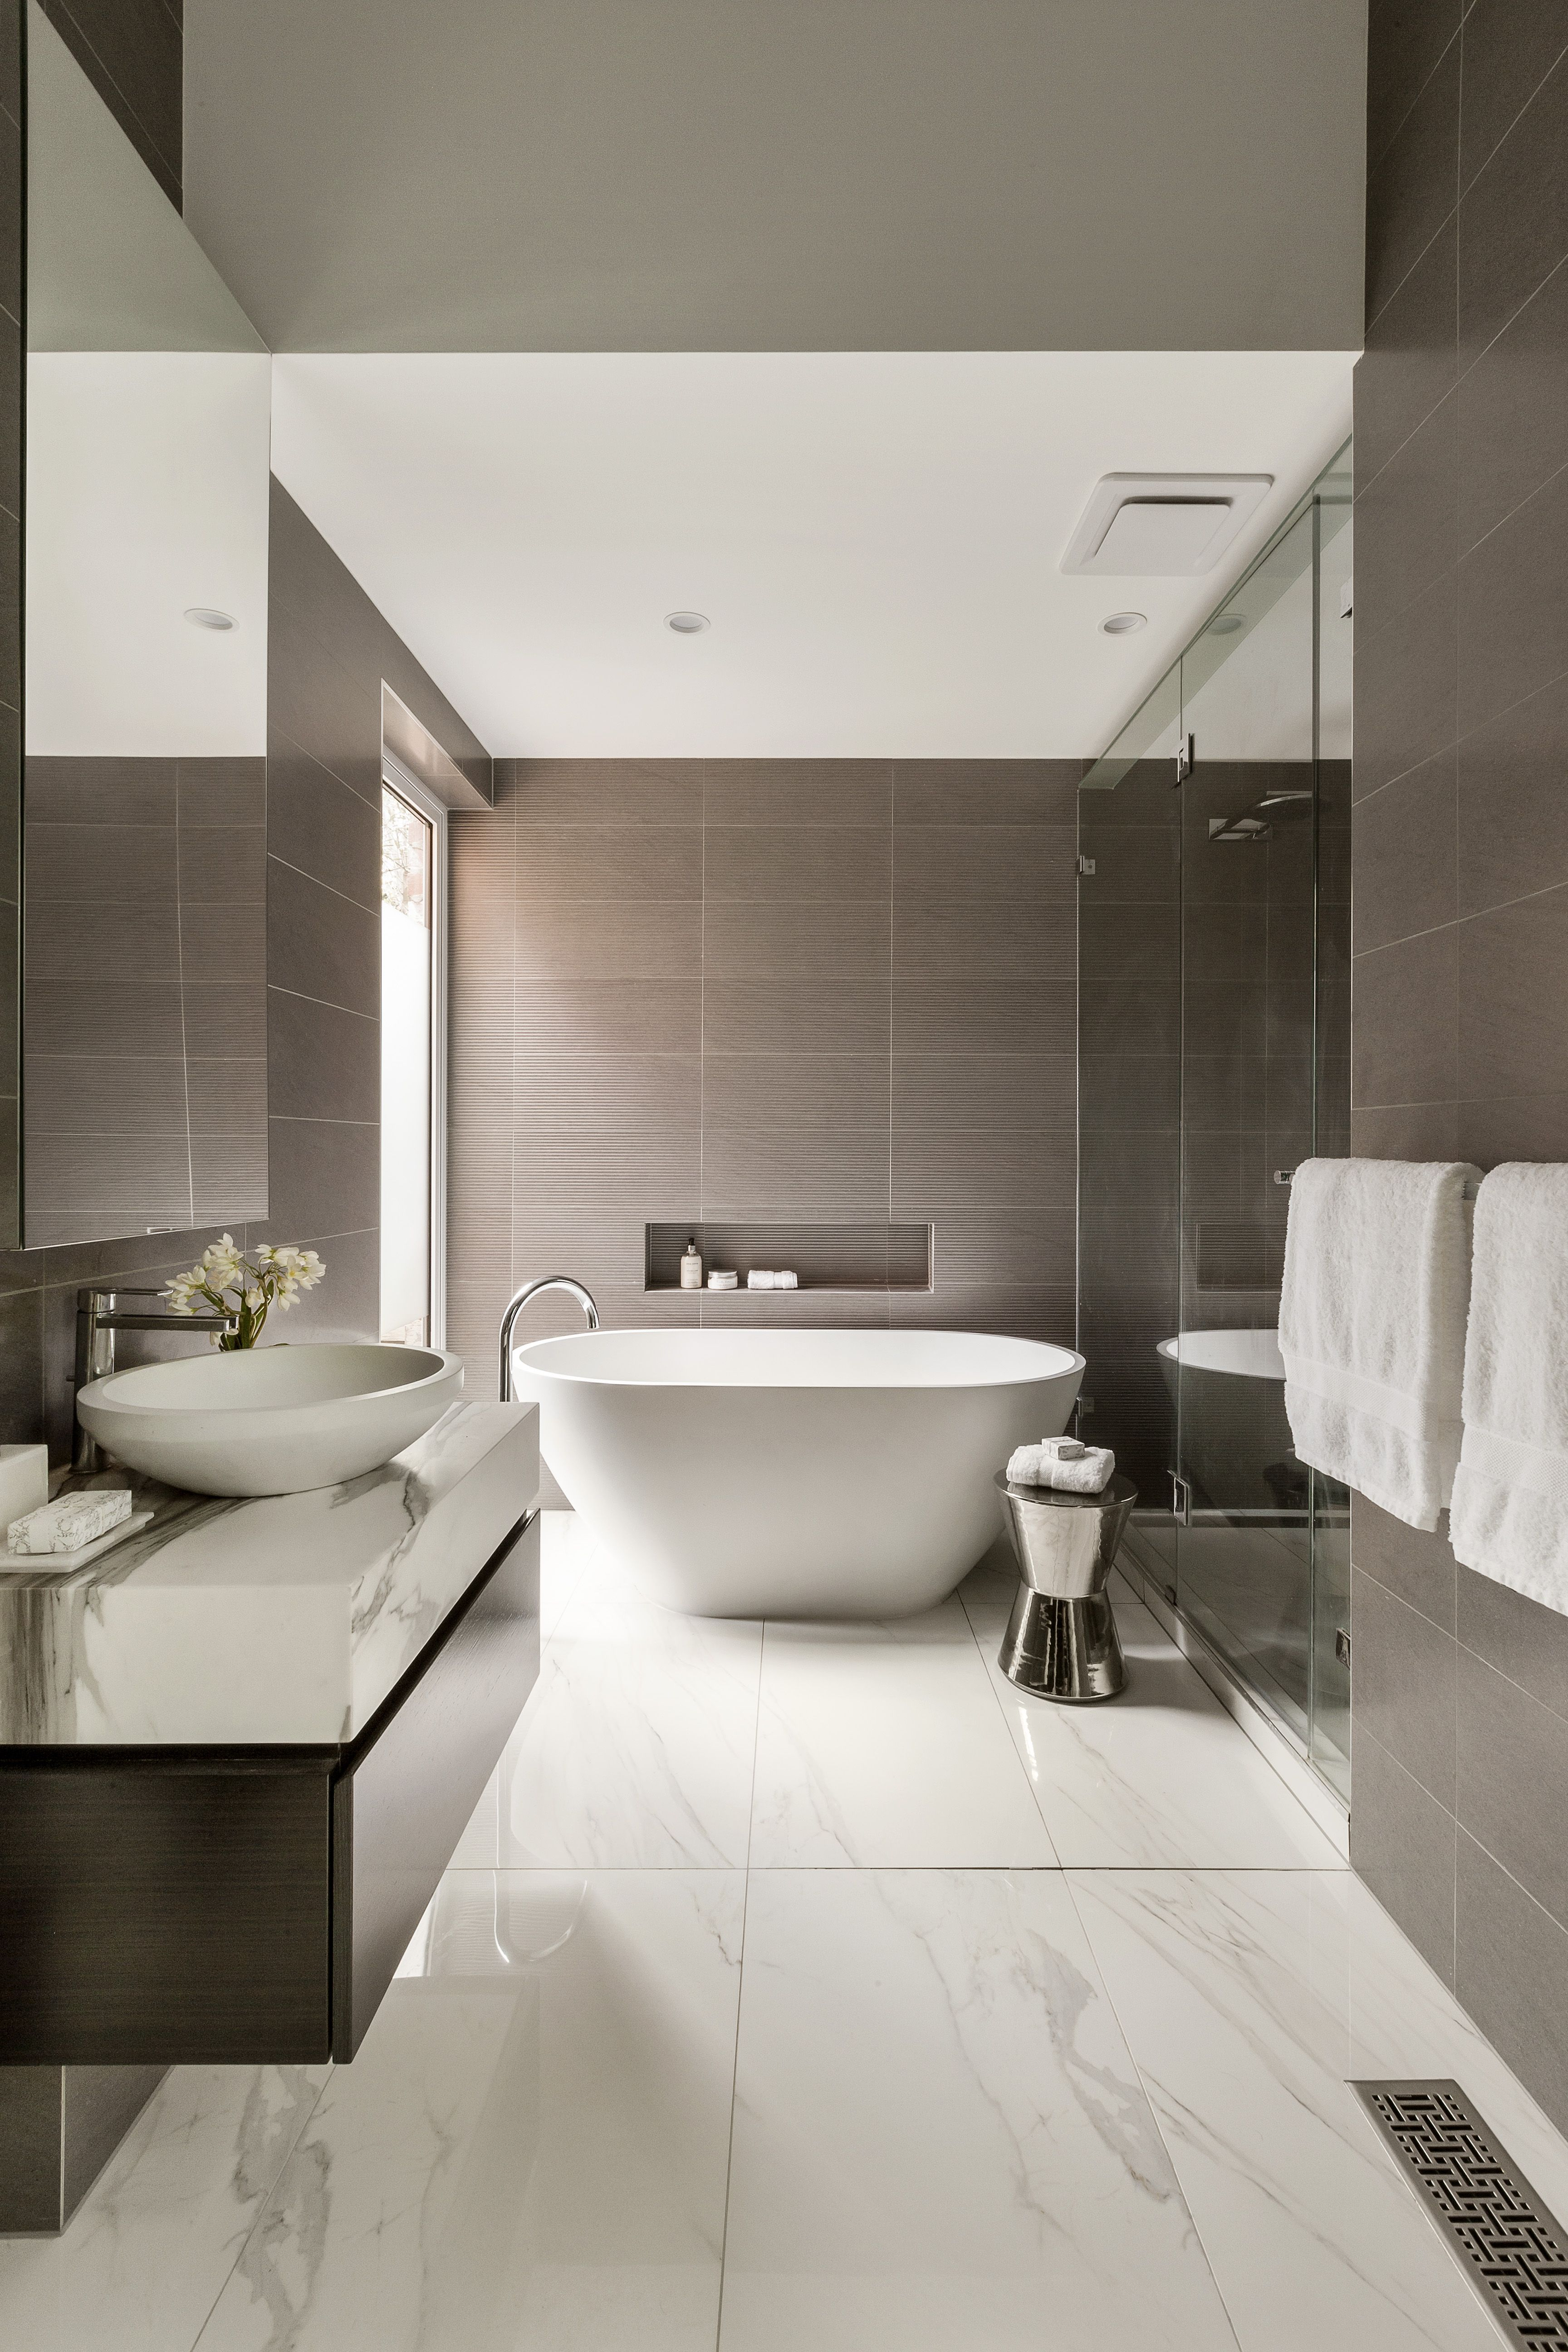 Pin by W VAN on Badkamer | Pinterest | Architects, House and Interiors